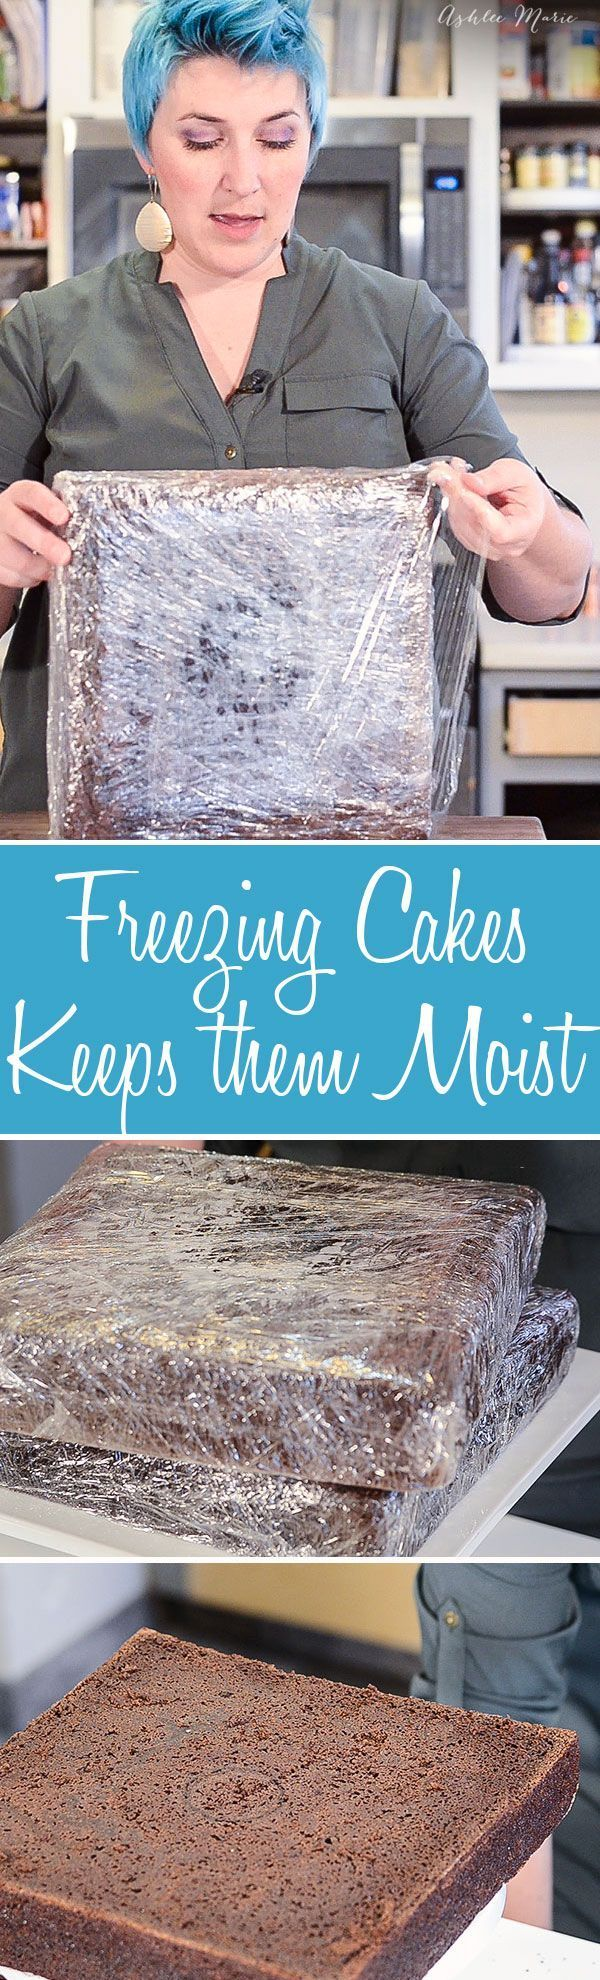 why freezing cakes keeps them moist and easier to work with